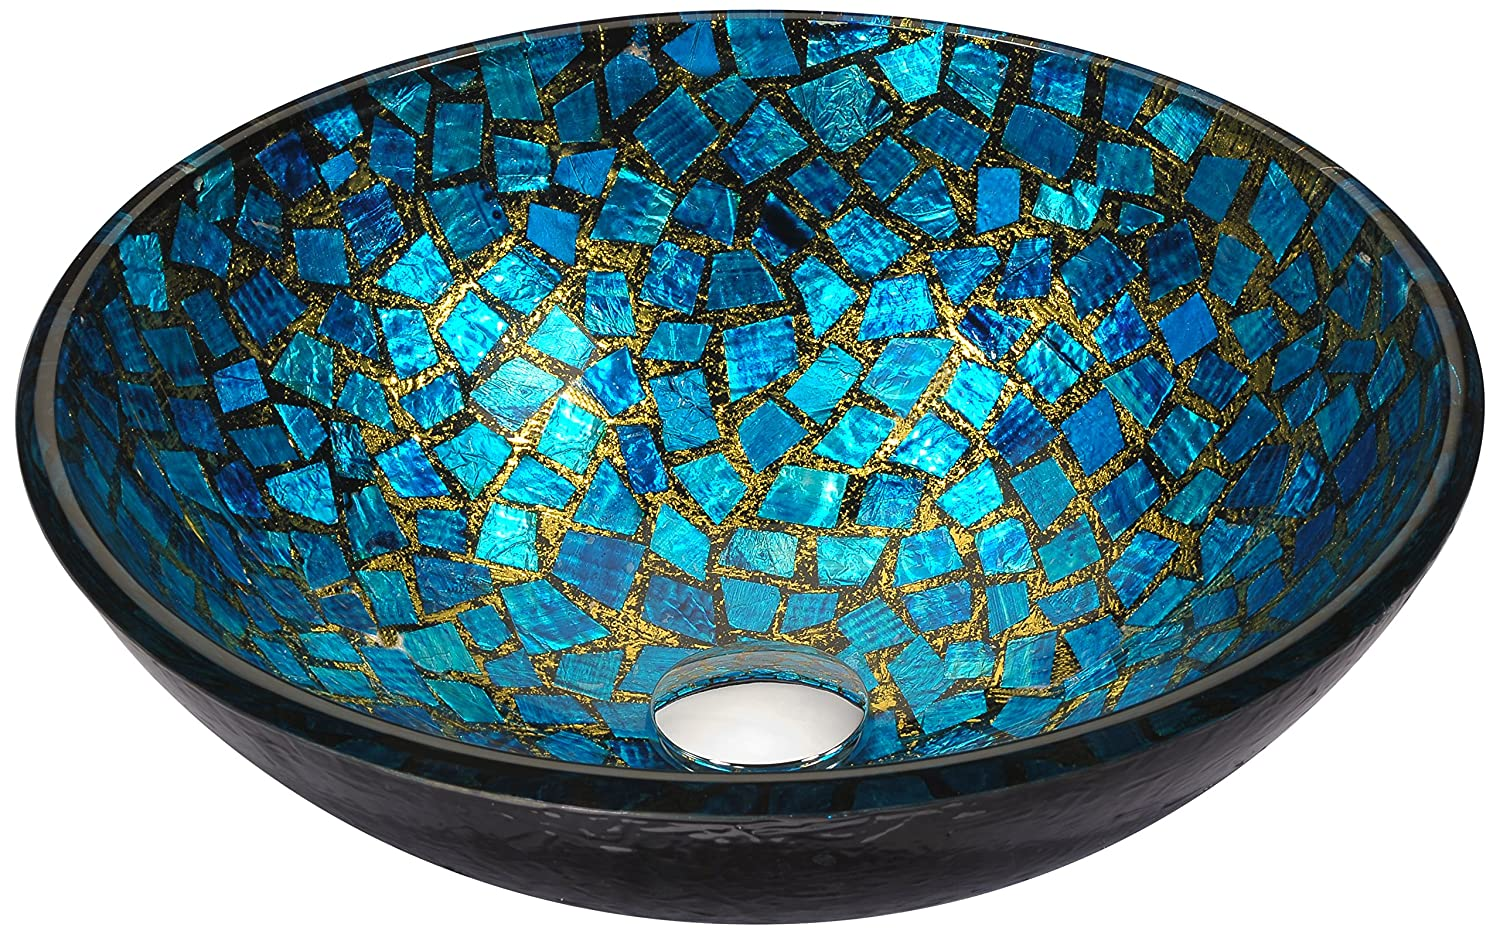 ANZZI Mosaic 16.5 in x 16.5 in Modern Tempered Deco Glass Round Vessel Bathroom Sink in Blue/Gold Mosaic Finish | Lavatory Top Mount Installation Oval Toilet Sink | LS-AZ198